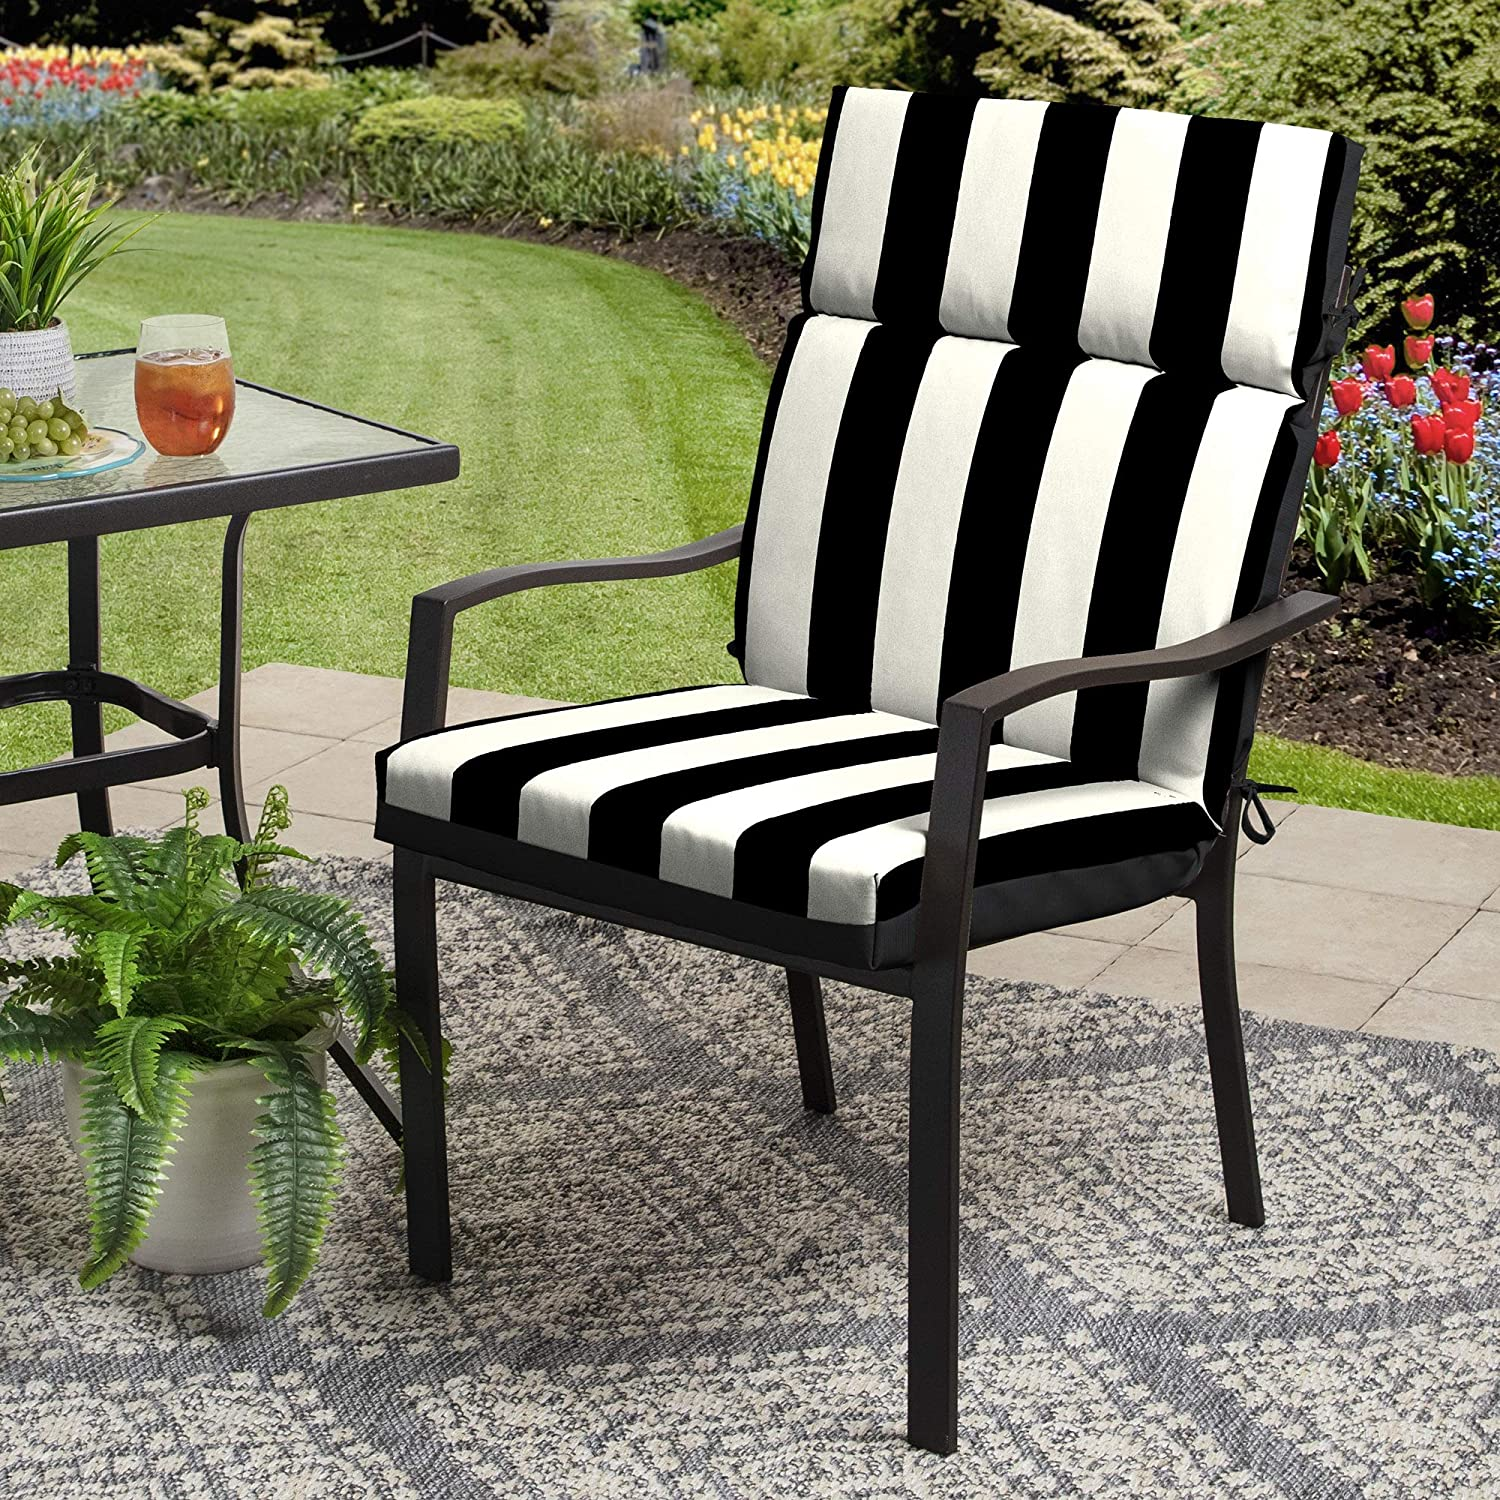 Better Homes & Gardens 44 x 21 inch Outdoor Chair Cushion - Black and White Stripe